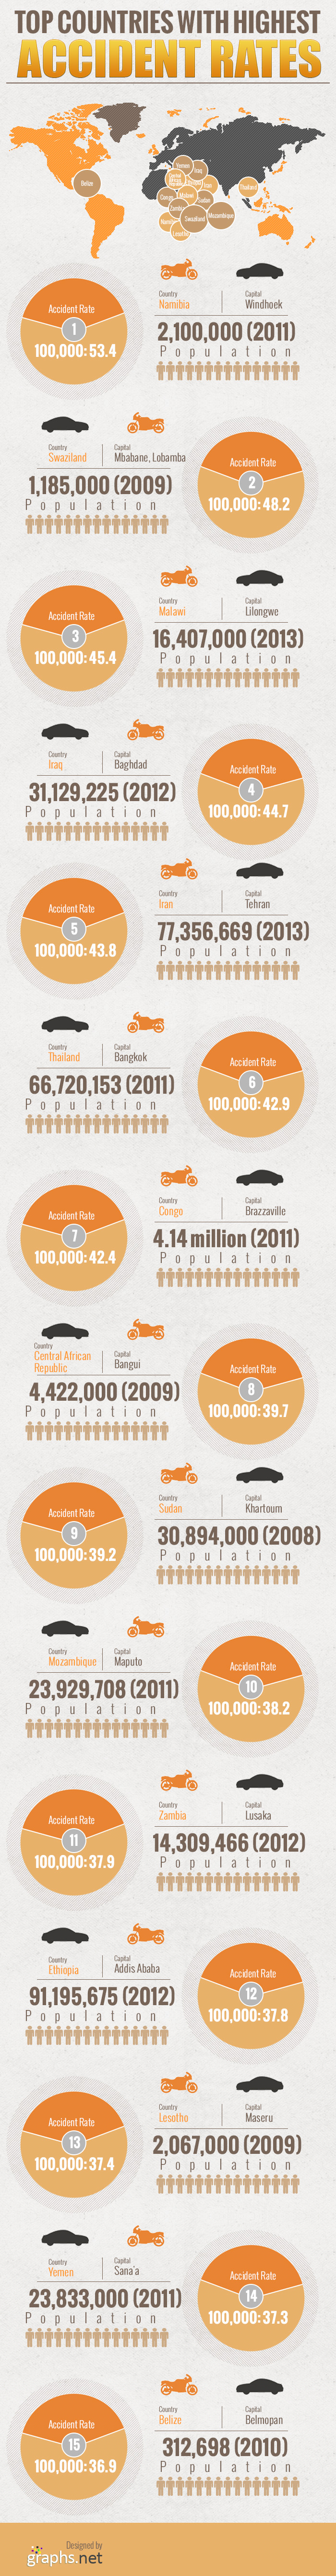 Highest Accidents Rates Country Wise